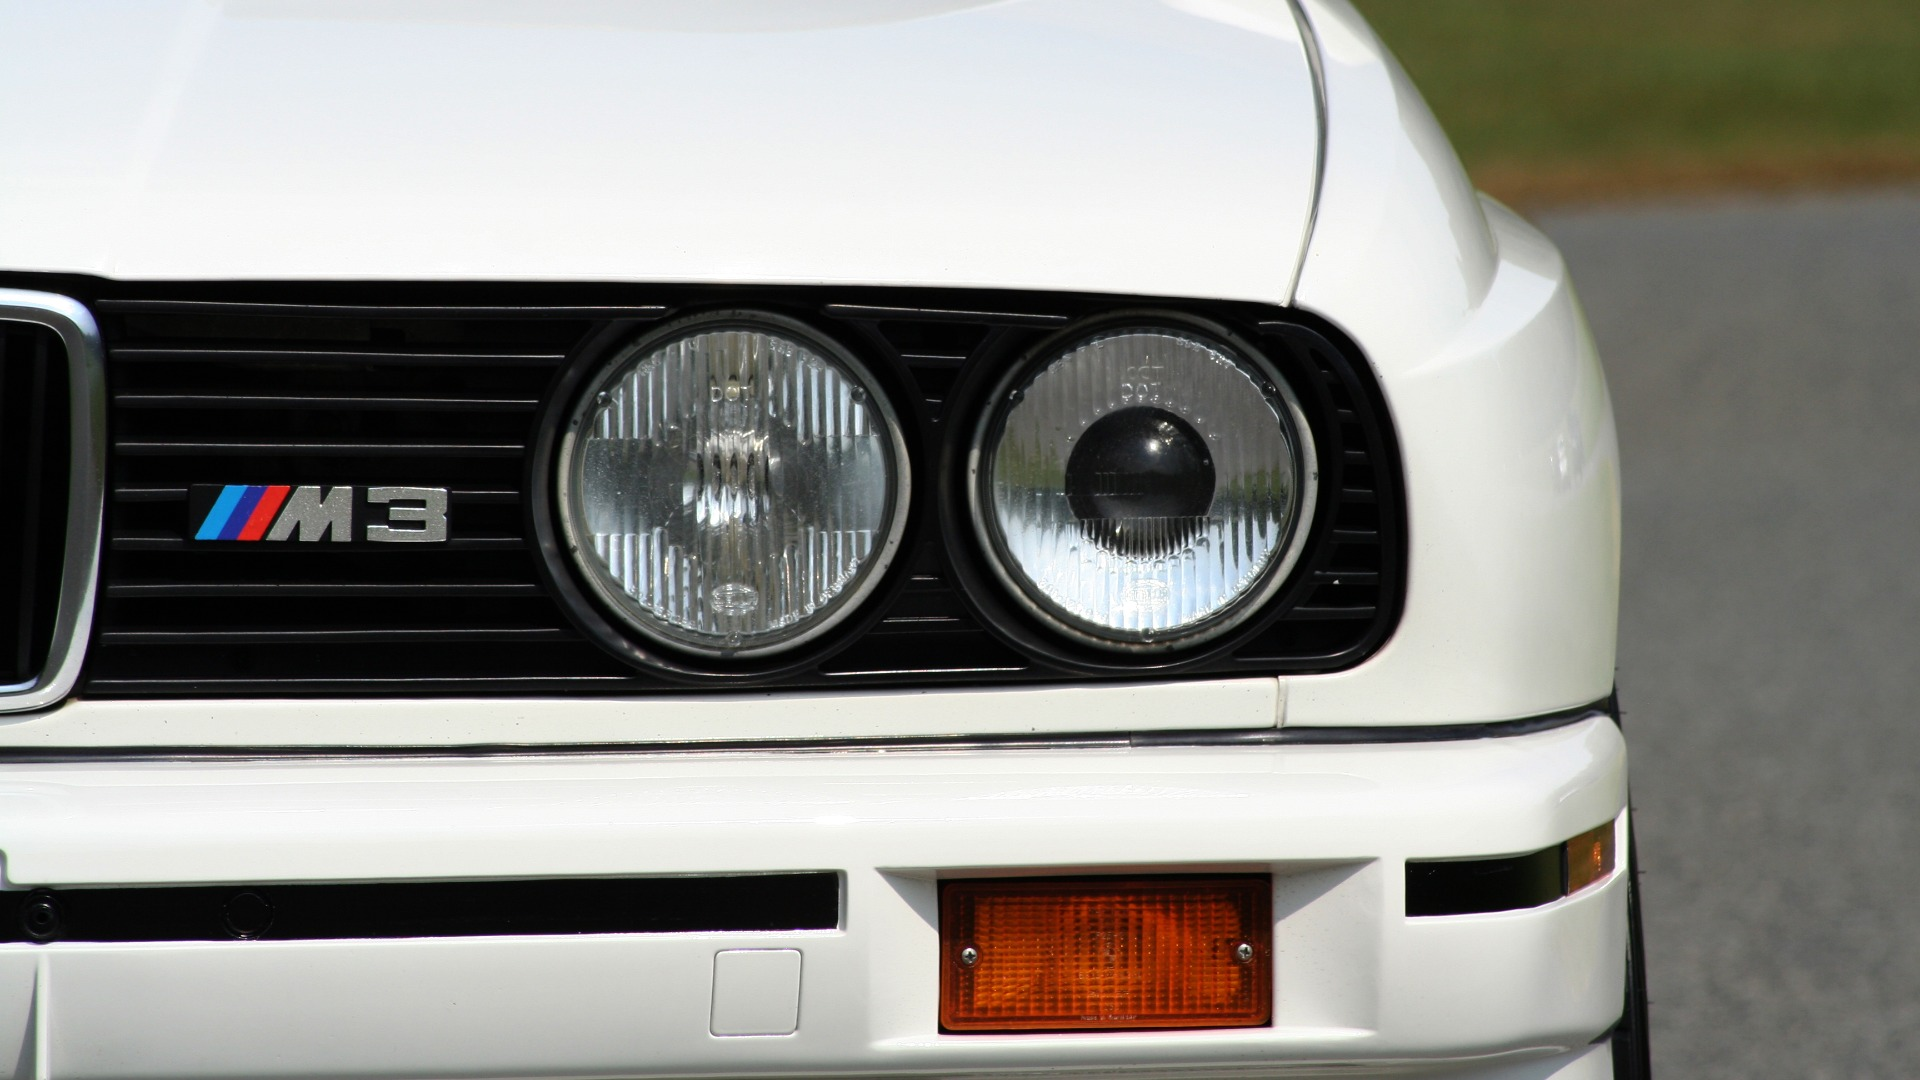 Used 1989 BMW M3 COUPE 2DR / 5-SPEED MAN / LOW MILES / SUPER CLEAN for sale Sold at Formula Imports in Charlotte NC 28227 16